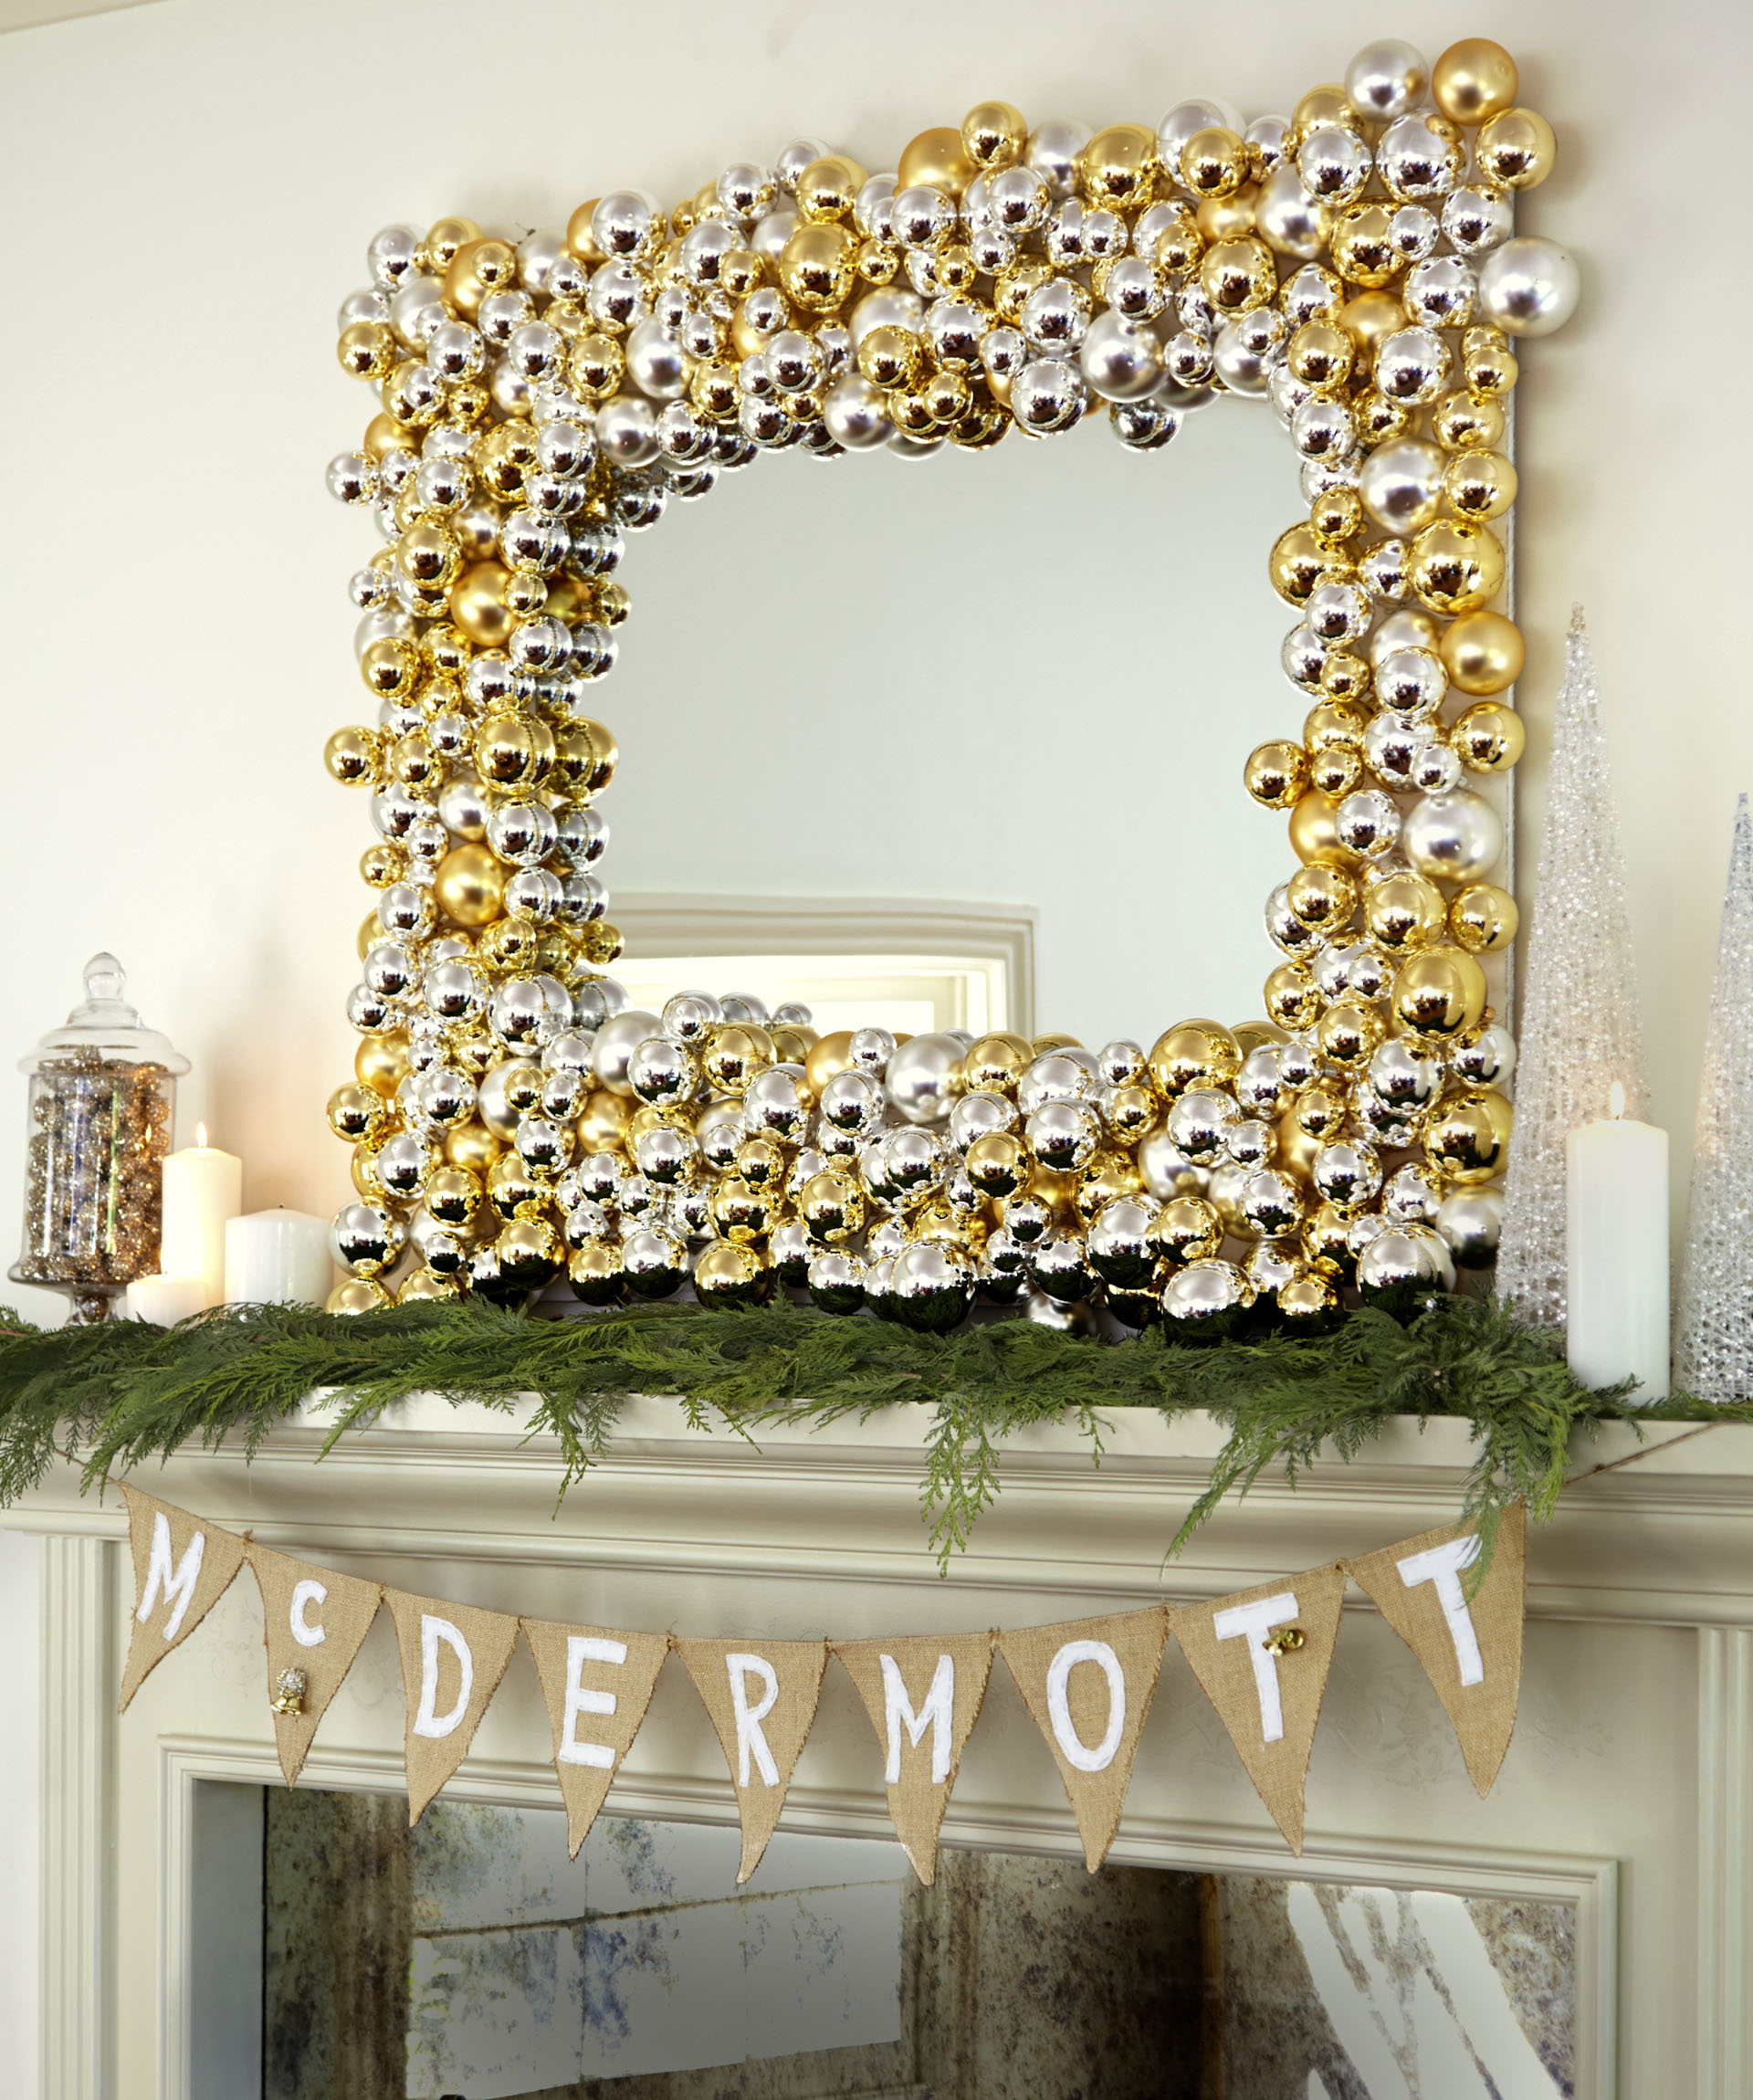 Diy holiday decor ideas from tori spelling easy diy for A christmas decoration